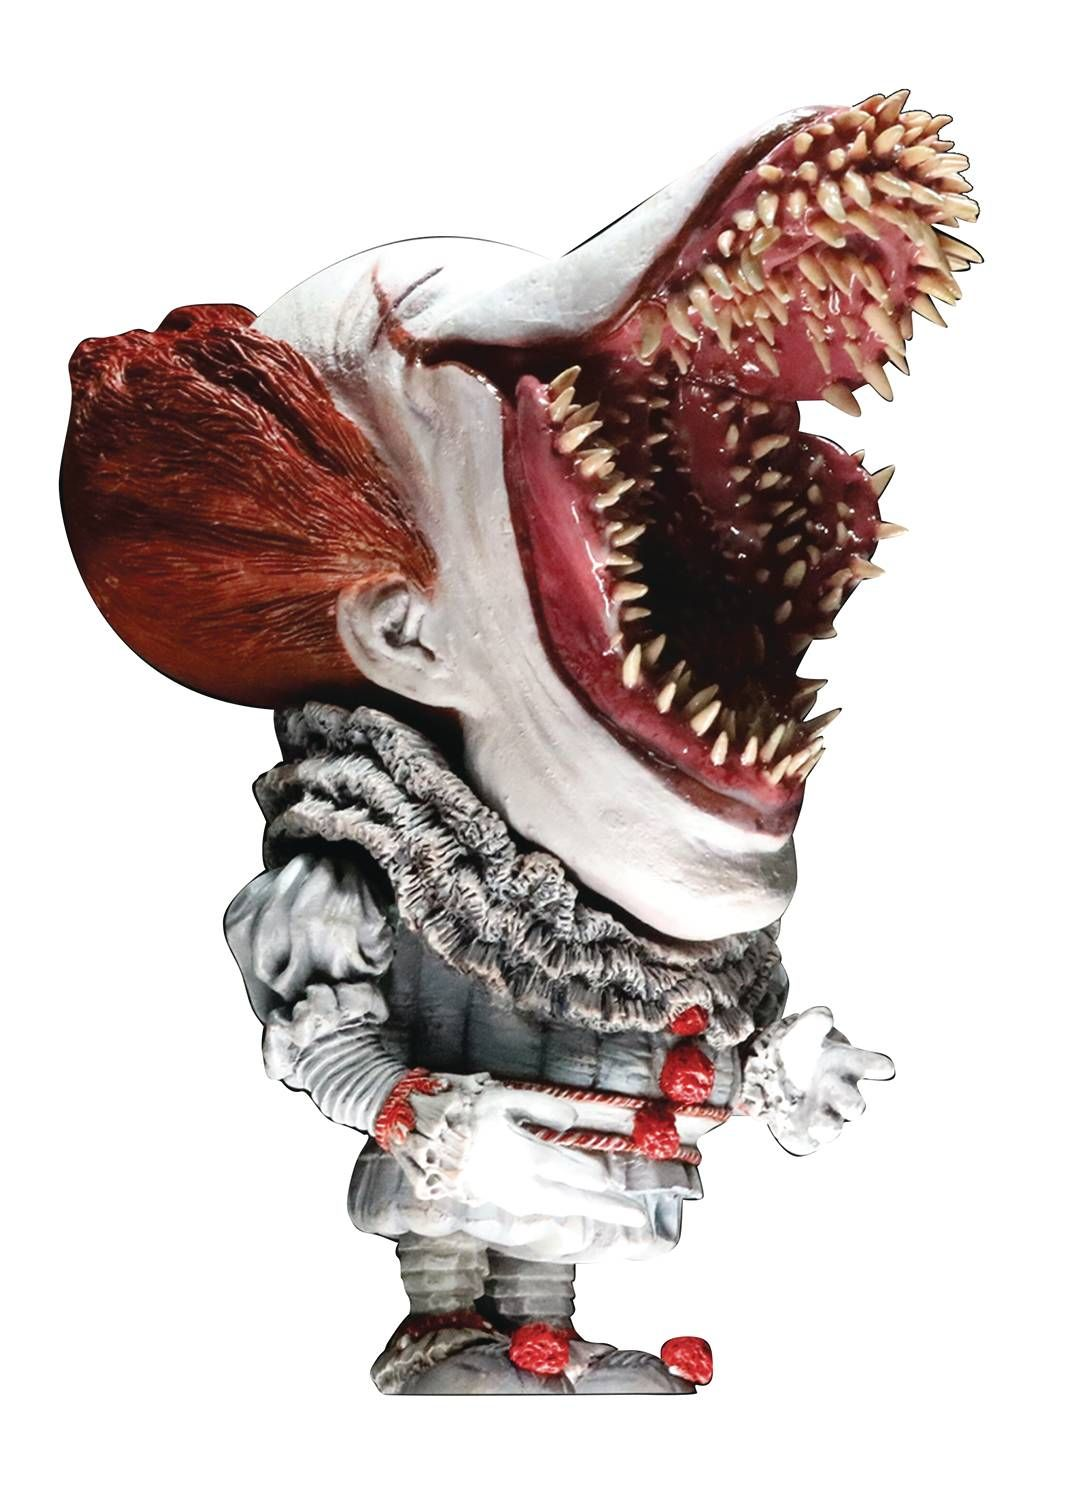 It 2017 Deform Real Series Pennywise Soft Vinyl Statue Open Mouth Version Statue Pennywise Horror Movie Art